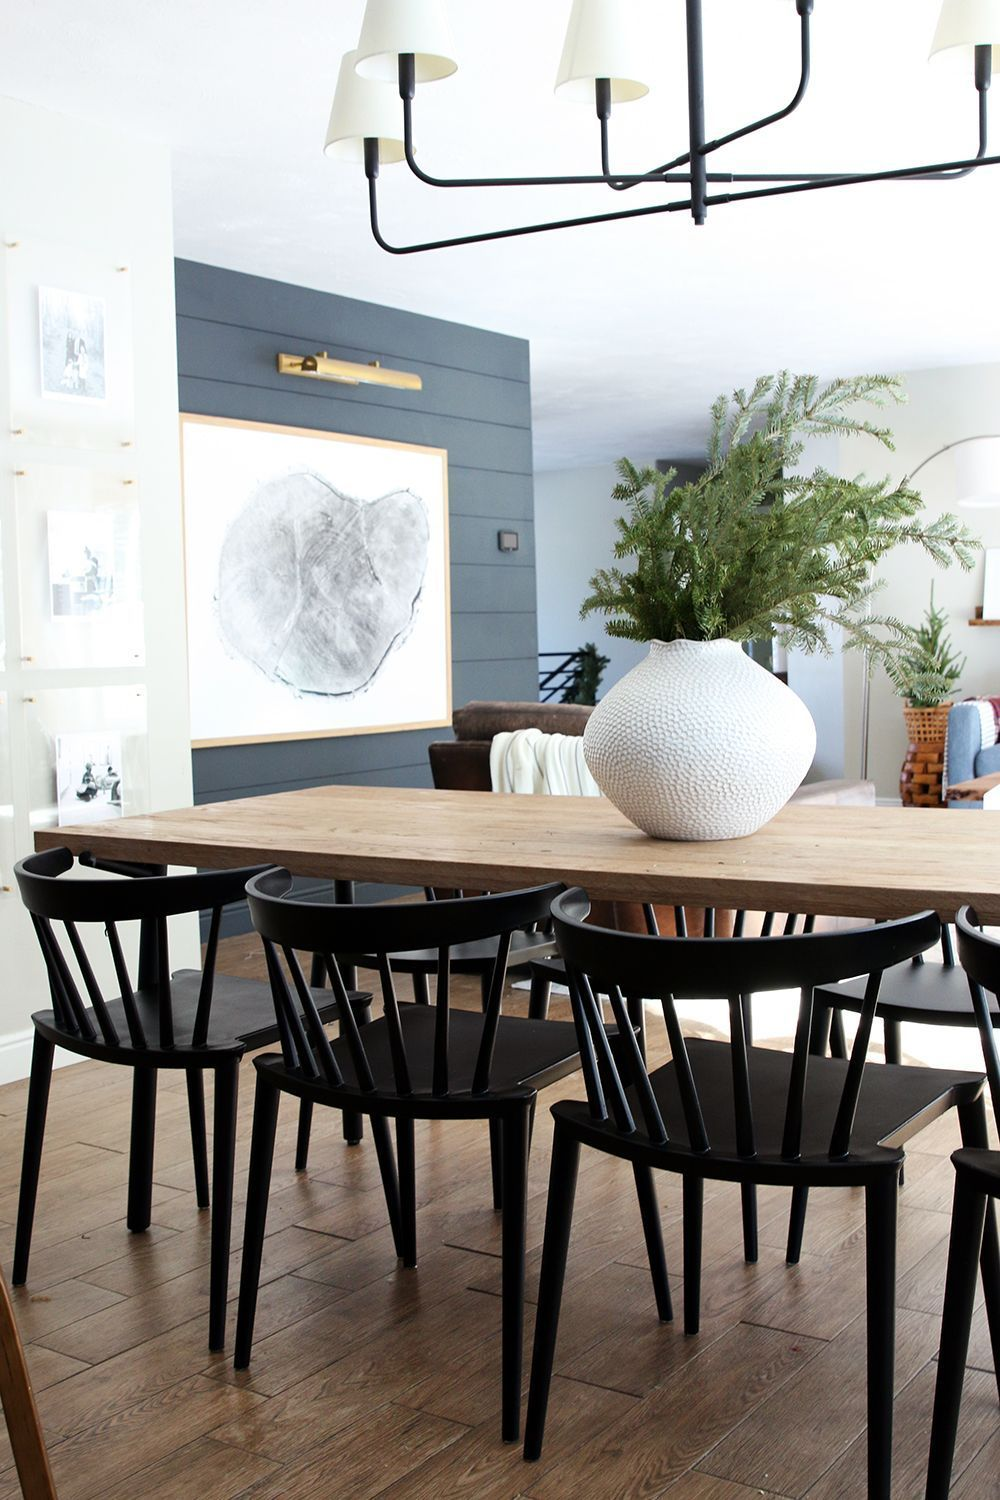 New Low Back Modern Spindle Chairs For The Dining Room Chris Loves Julia Chairforbedroom Diningr Black Dining Room Dining Room Chairs Black Dining Chairs